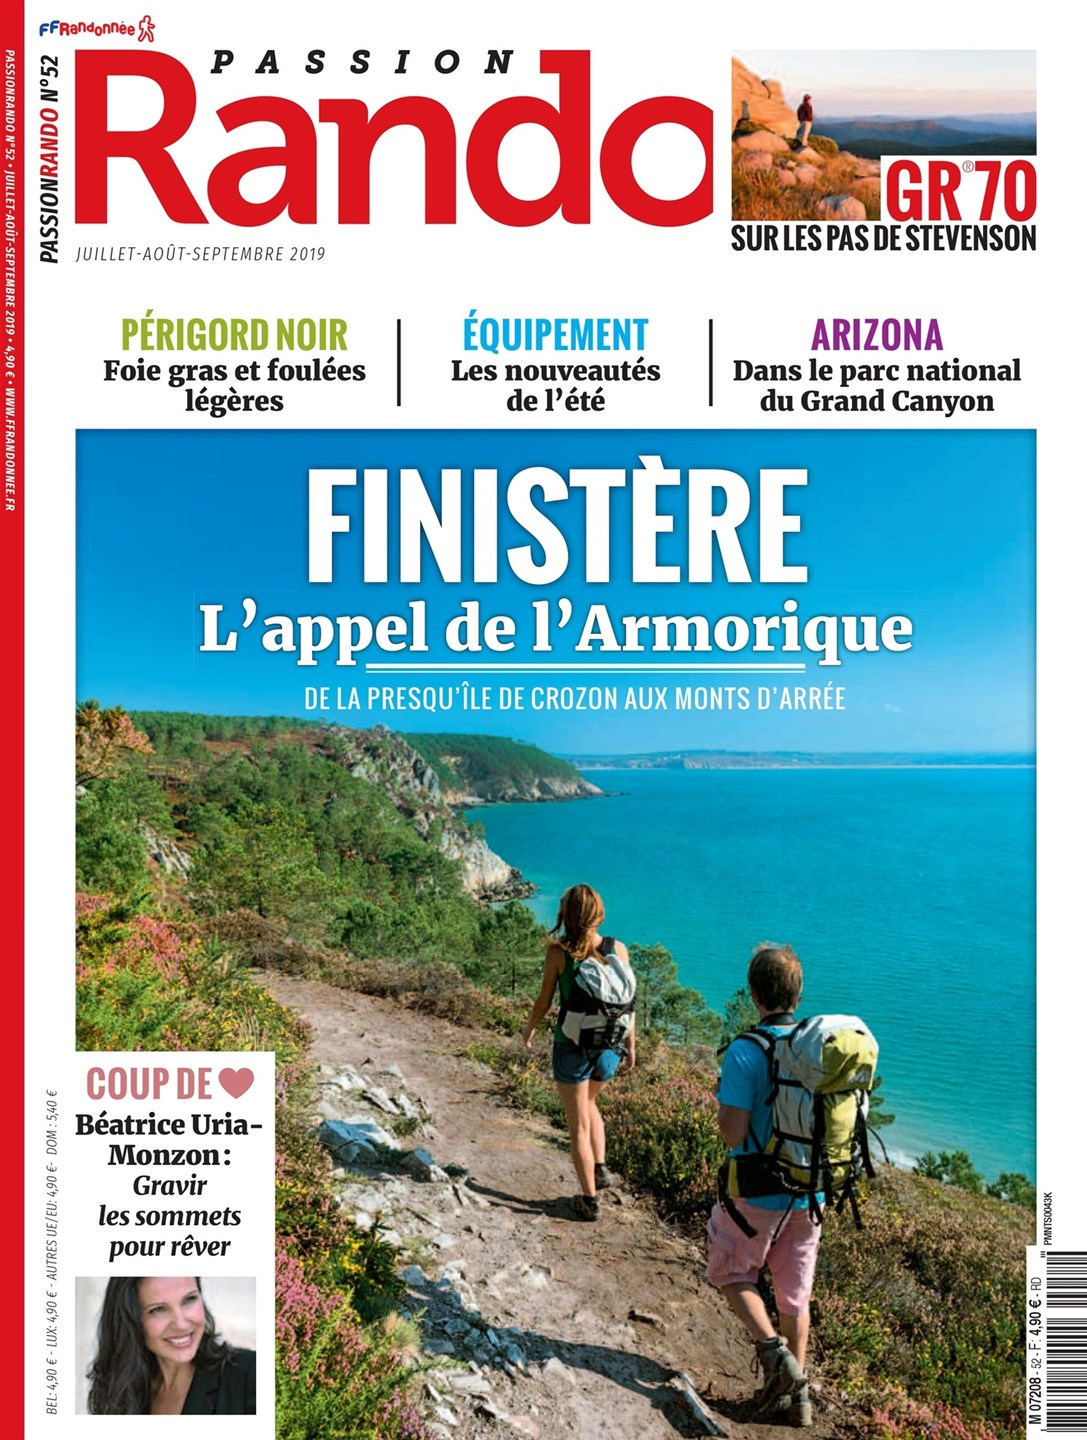 FFRandonnée - Passion Rando - Magazine - Randonnée - GR34